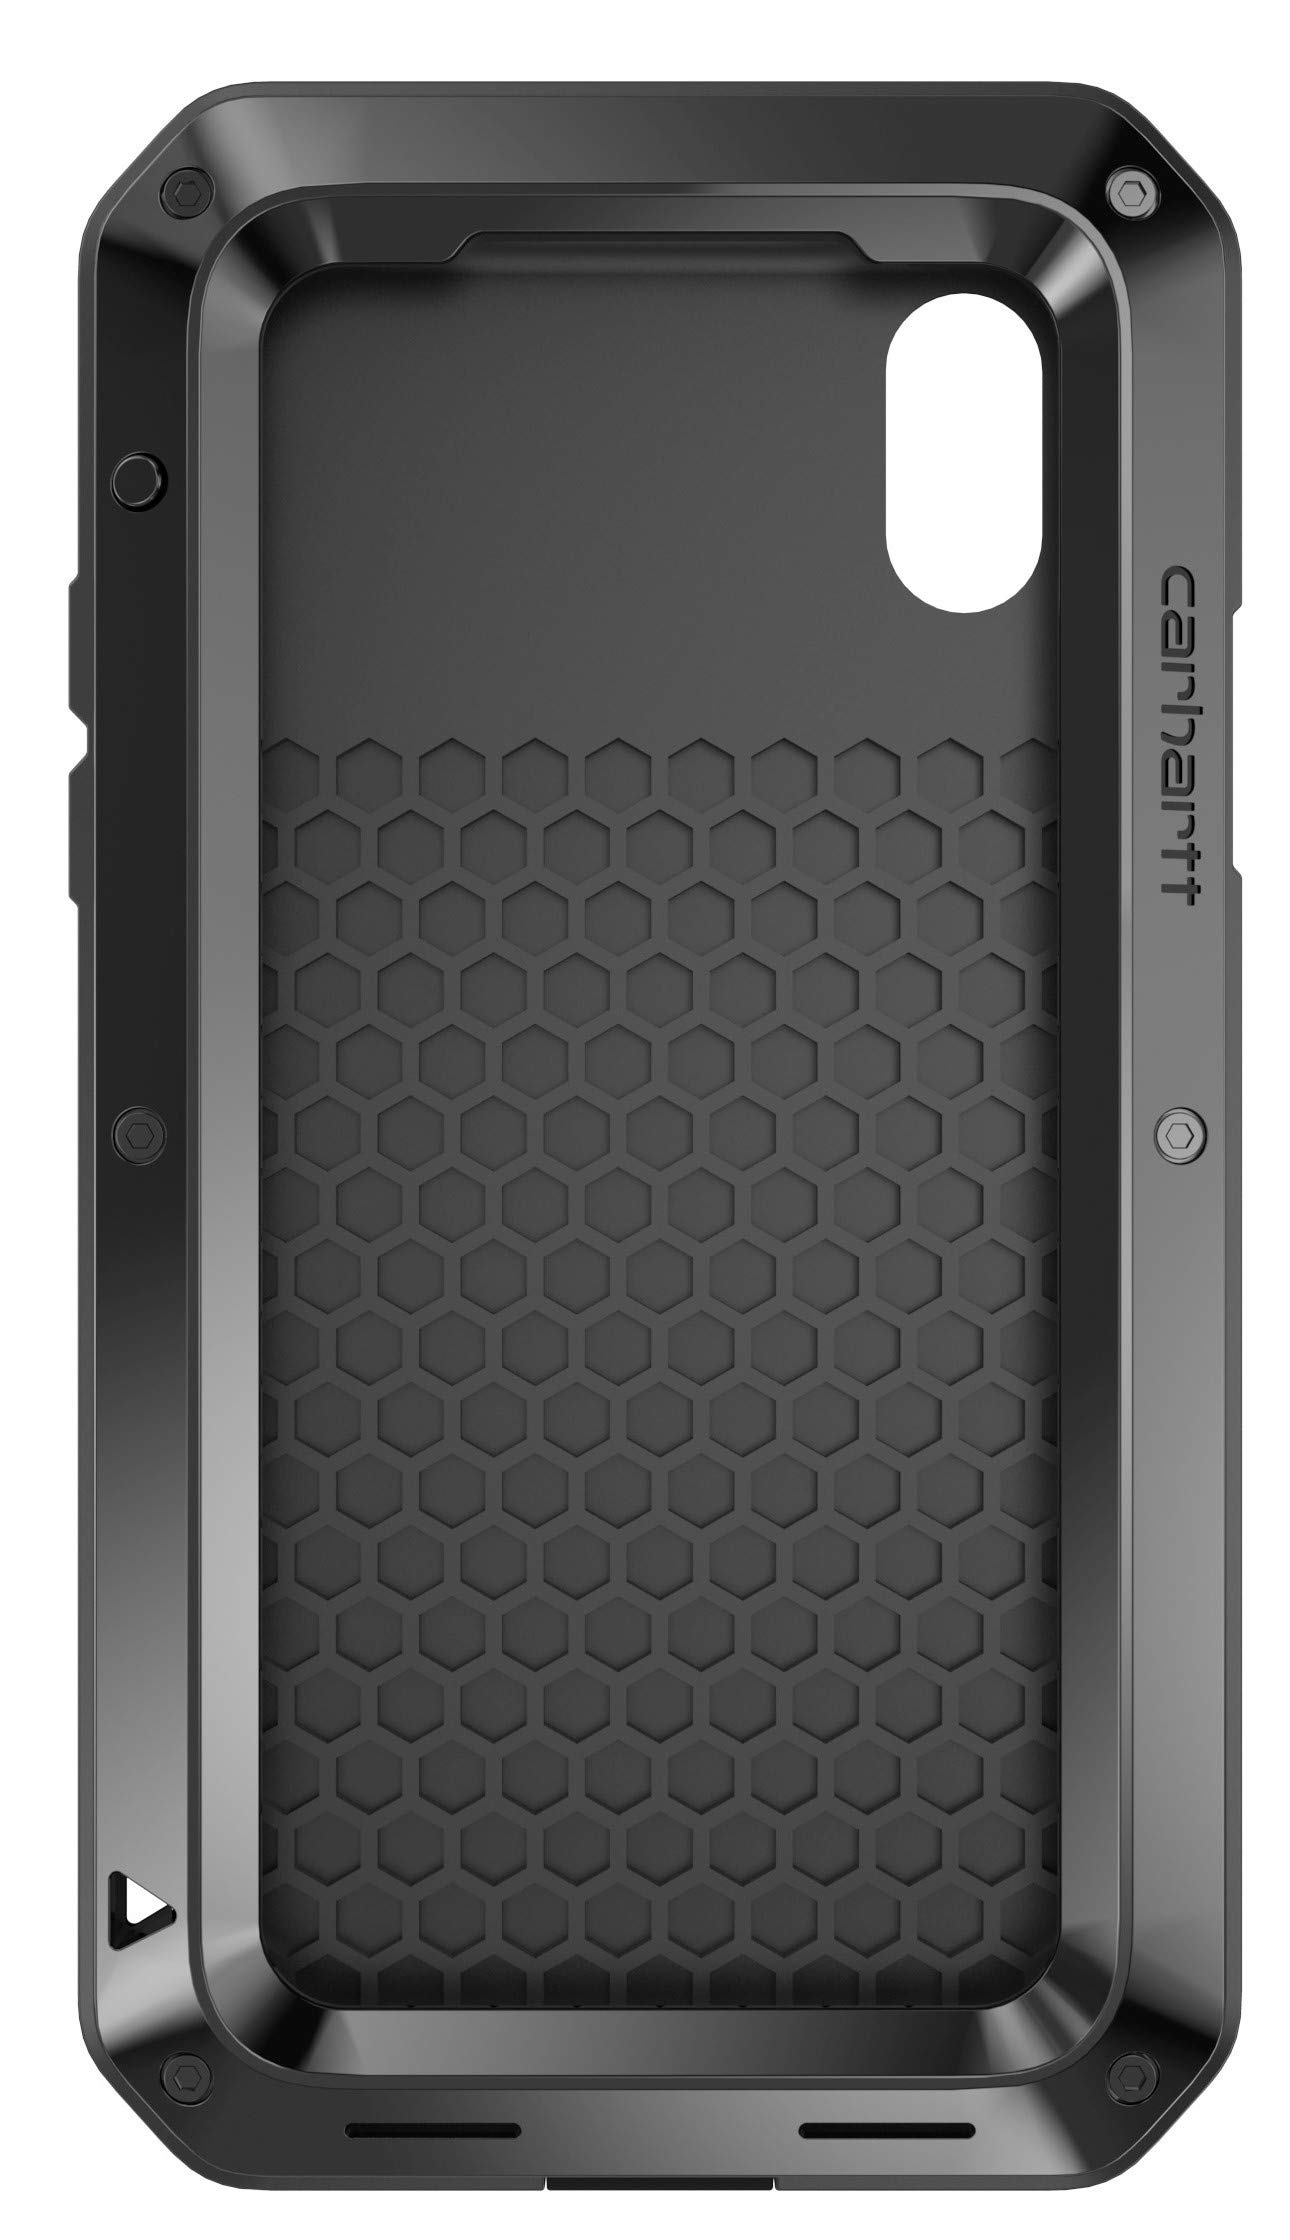 Carhartt RIG Case for iPhone Xs Max by Carhartt (Image #7)